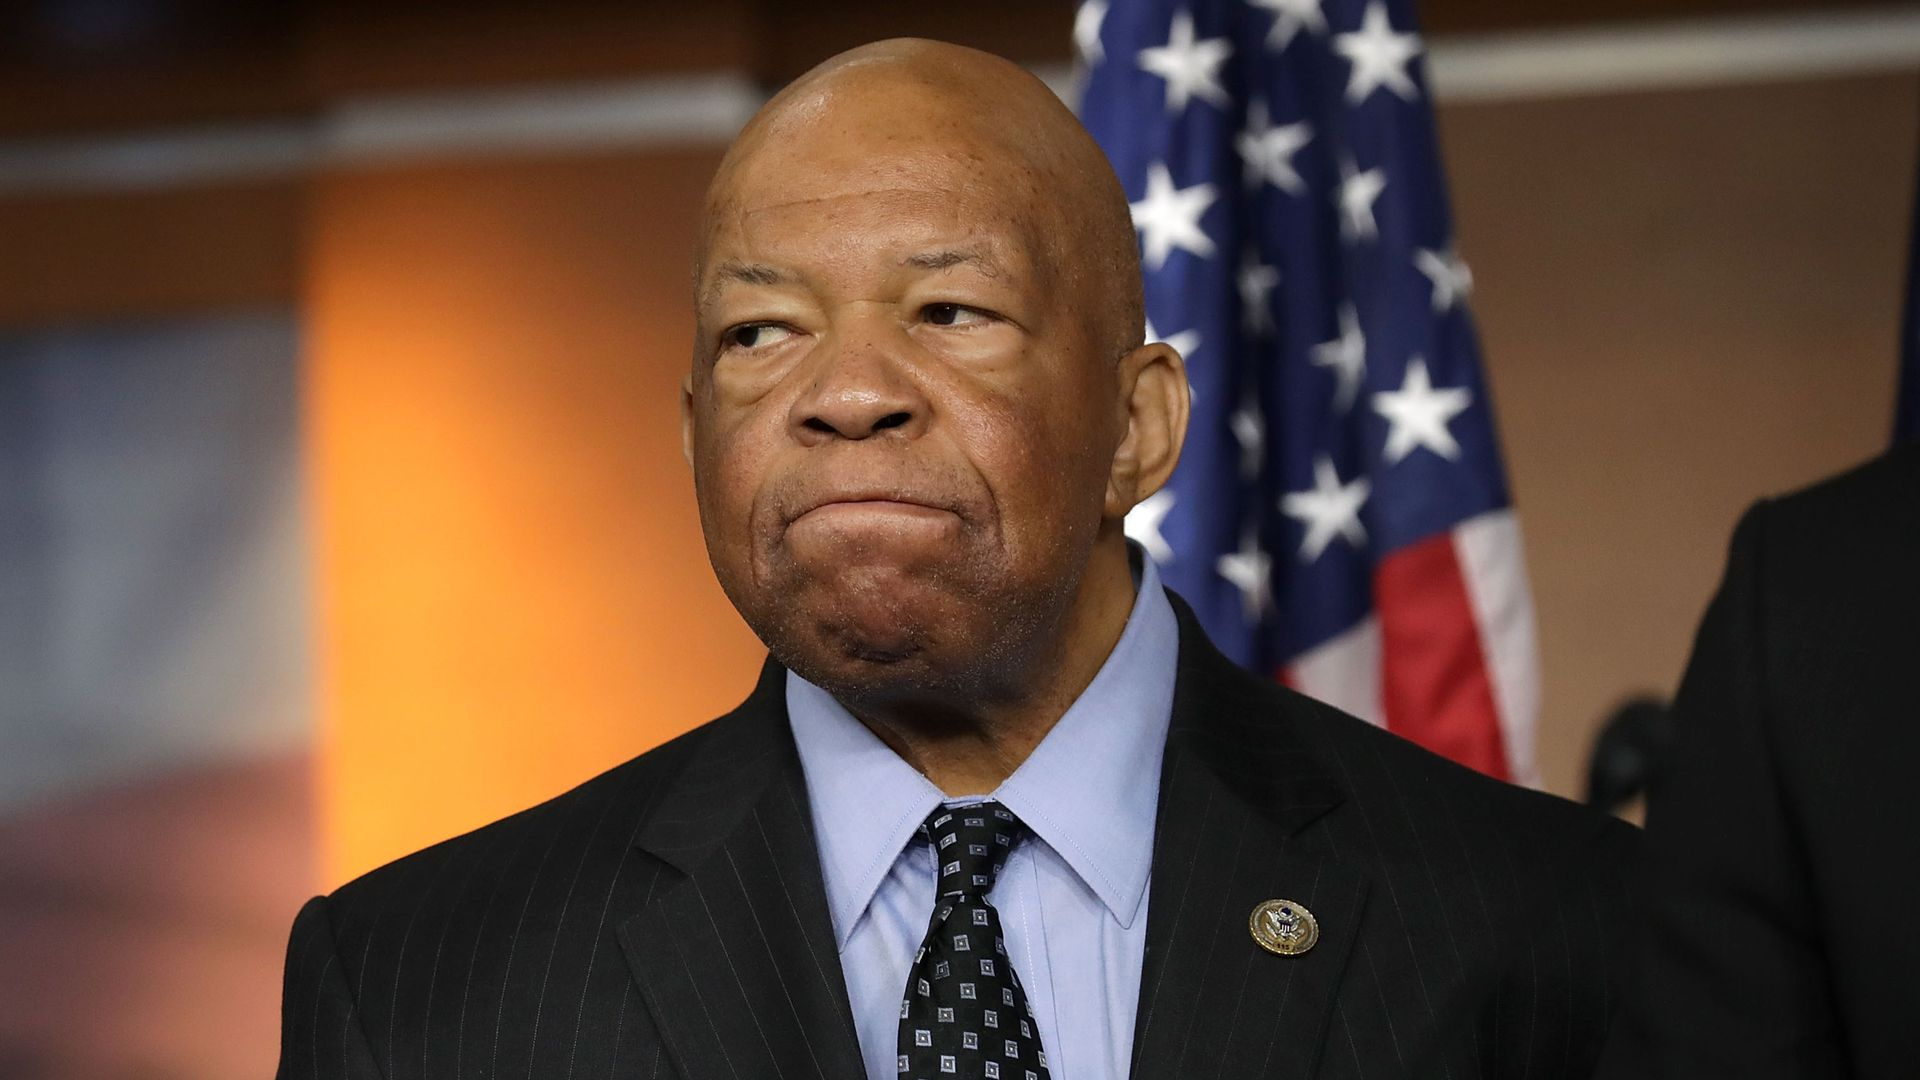 House Oversight and Government Reform Committee ranking member Rep. Elijah Cummings.